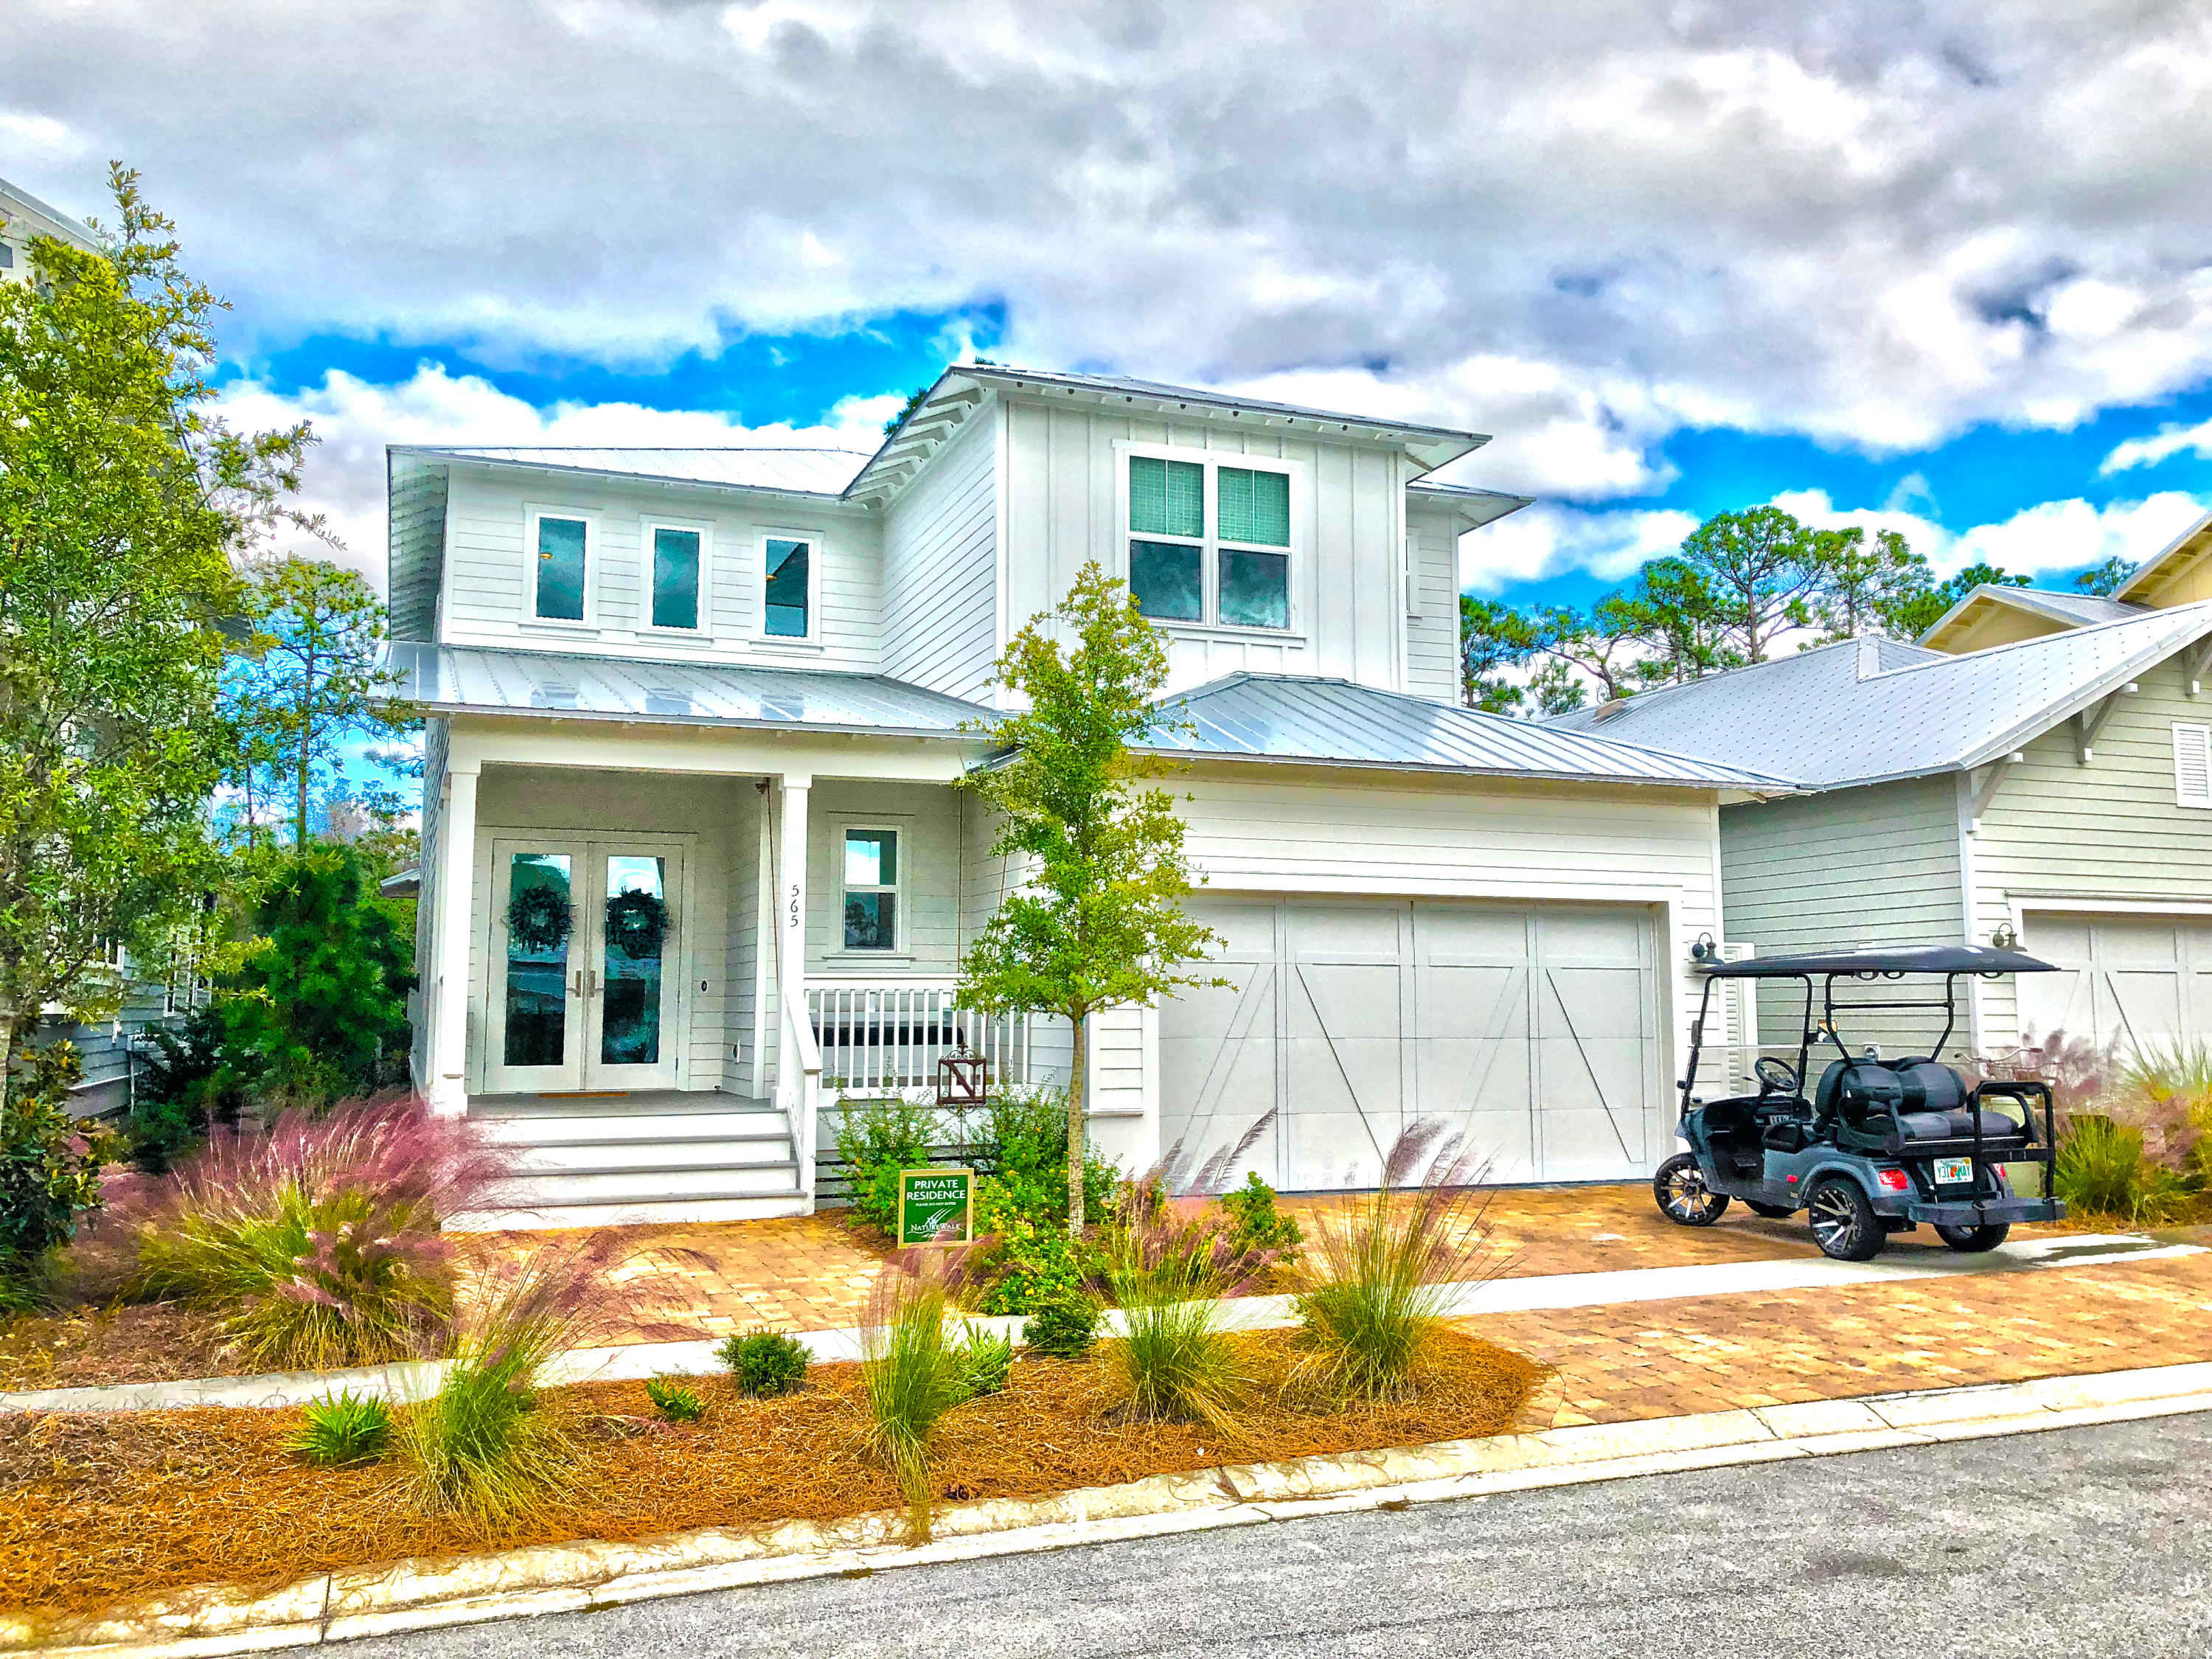 JUST IN TIME FOR PEAK!! NEW PRICE for THIS 2018 Newly-Built NatureWalk @ Seagrove LUXURY 6-Bedroom, 5 Bath, 2-Car Garage on a Premium Lot with loads of Custom Upgrades in Phase 2!  It's Back on the Market due to a Buyer Finance issue, which gives you the RARE OP to get this gem at a NEW PRICE & now unfurnished. *The Fully Furnished TURNKEY option is being offered by Seller for any interested buyer for a separate bill of sale between parties.  The List Agent is happy to provide those details.  This home is perfect as a Primary Residence, Investment Property with $75K+ Gross Rental Projections, or 2nd Home offering plenty space for all your family and friends with over 3300 Interior Living space and additional Outdoor Living porches front & back. Enjoy the Water Views from the front & Forest views from the back.  Within Walking or a quick bike ride to 'The Gathering Place' amenities area, to the beach, Publix, Shops or enjoy the Seasonal shuttle to nearby Seaside, Watercolor & the Beach. Home is located in Phase 2 right across from beautiful views of the pond which hosts a fountain.  A Professional Pool Design was paid for by current owner and is included in the Agent Documents Section for buyers to see what is possible. NatureWalk at Seagrove is the 30A lifestyle that dreams are made of.  It is nestled in and surrounded by Point Washington State Forest, and is a walking and active-life front-porch community with State-of-the-Art Amenities.  It includes a zero-entry/beach-style pool, lap pool, a heated pool and a shaded kiddie pool, along with a Children's Play Ground, Grilling area, Bar & lounging area, Fire Pit, Hammocks, Basketball/ Pickleball court and Life-Fit Stations on the Trails, as well as a Private Trail, from within the community, directly to the beach!   Currently, it is on a Vacation Rental Program (Rental Projections are attached in Documents Section).   Here is the Vacation Rental Link: https://www.vrbo.com/1504009  *All listing information deemed correct, but buyers are responsible to verify all details as desired.